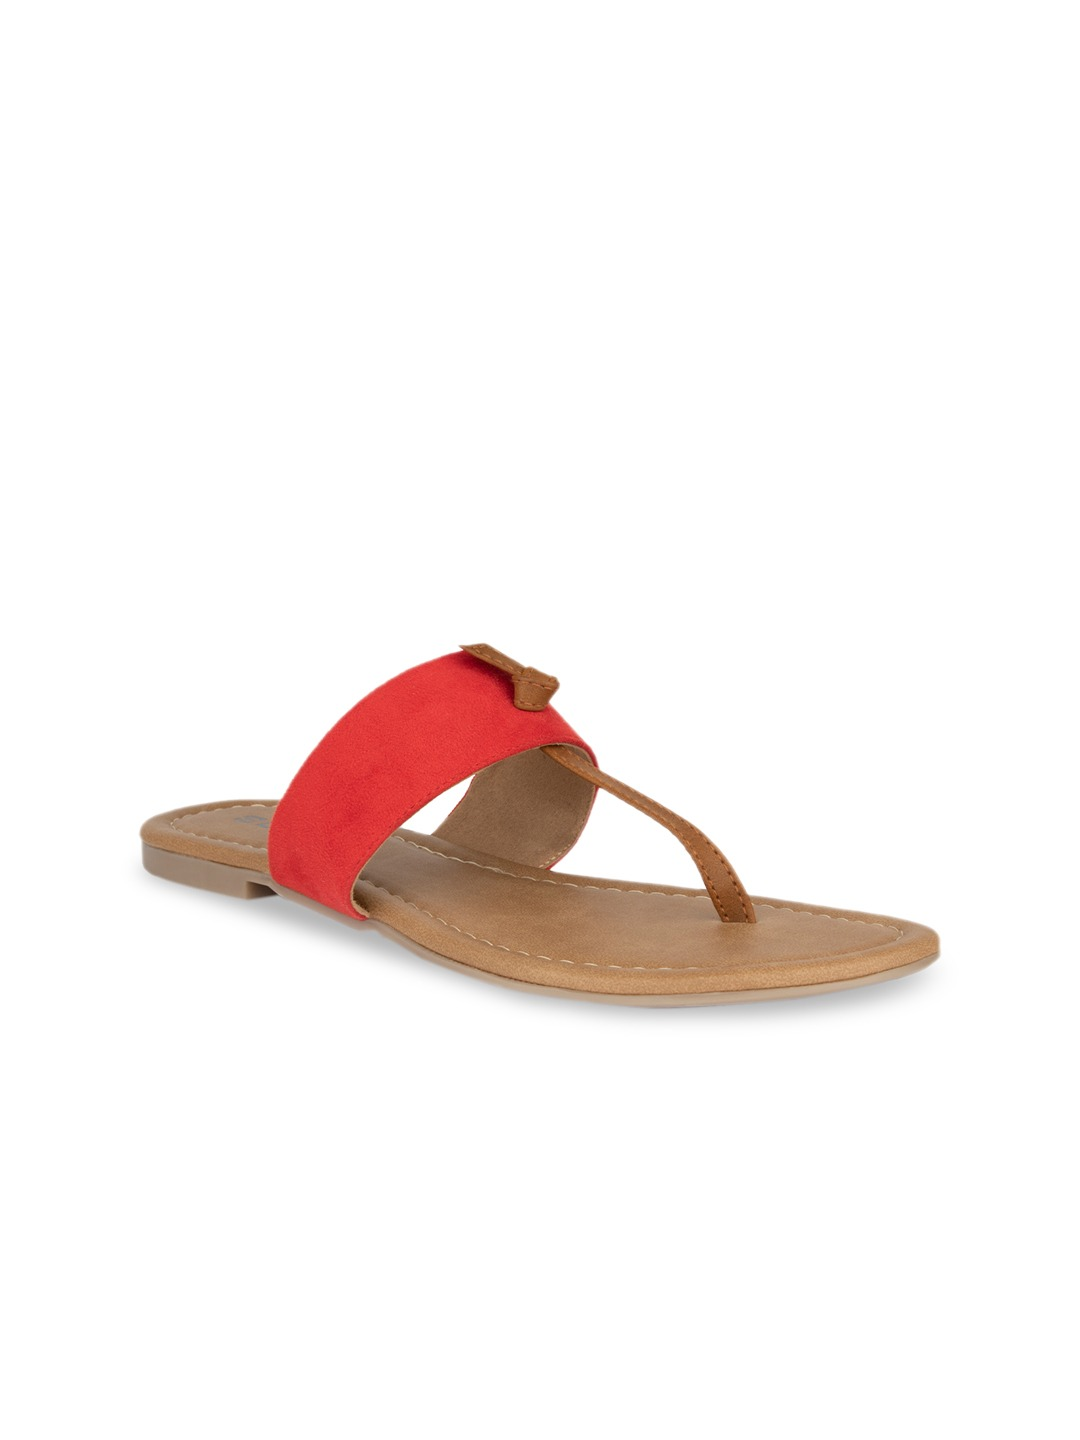 Red Solid Suede T-Strap Flats